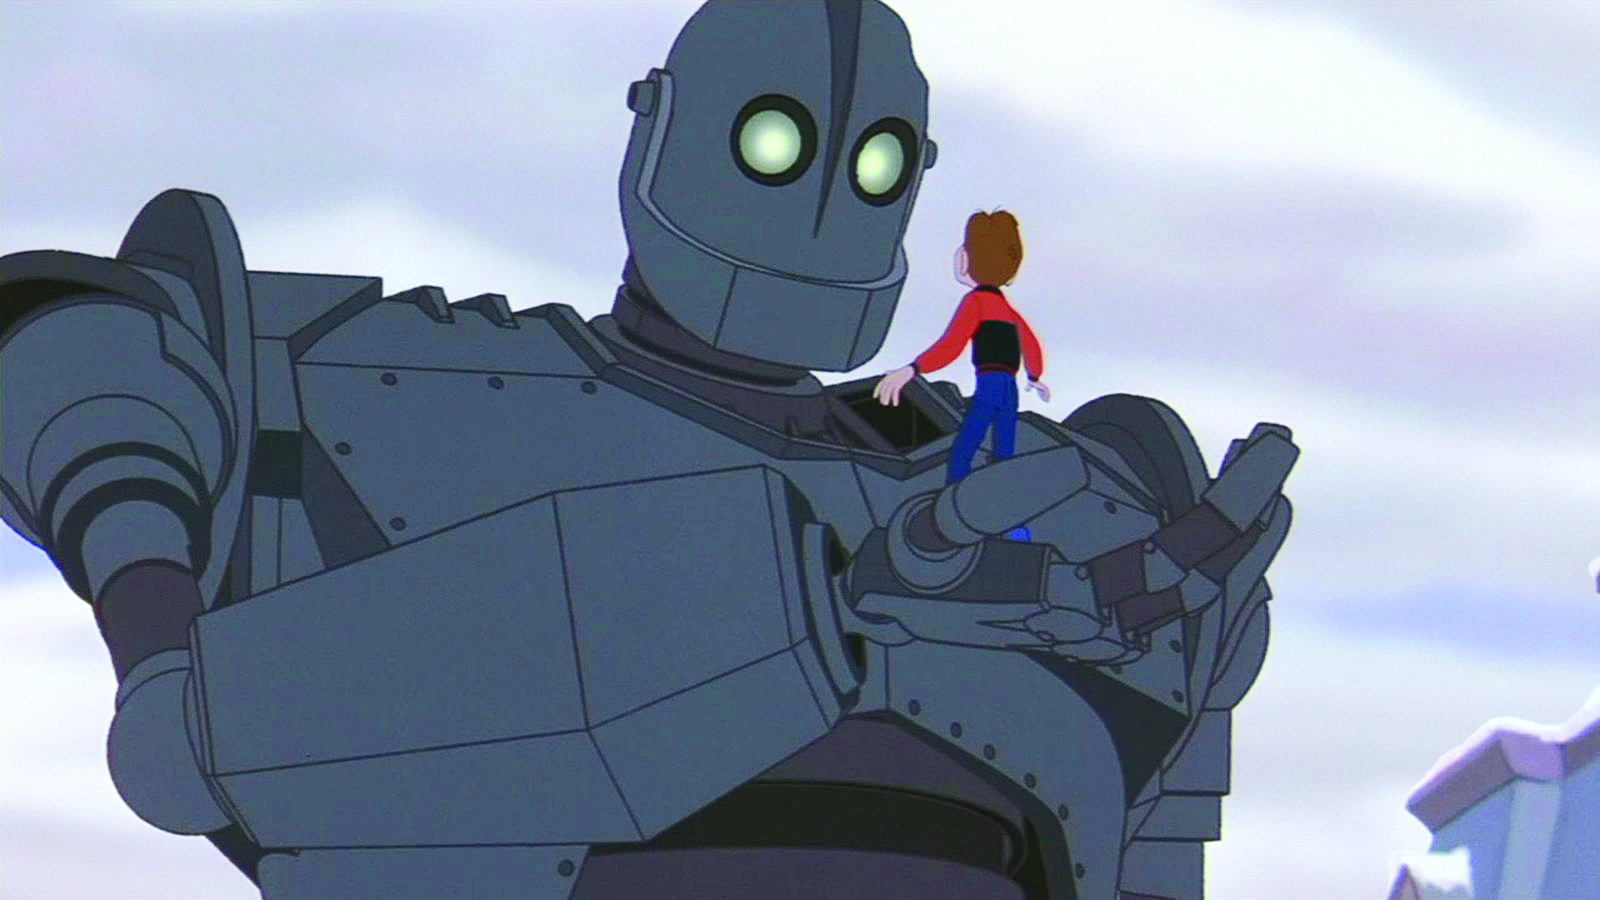 Superman Animated Wallpaper Hoping The Iron Giant Finally Gets Its Due The Blade